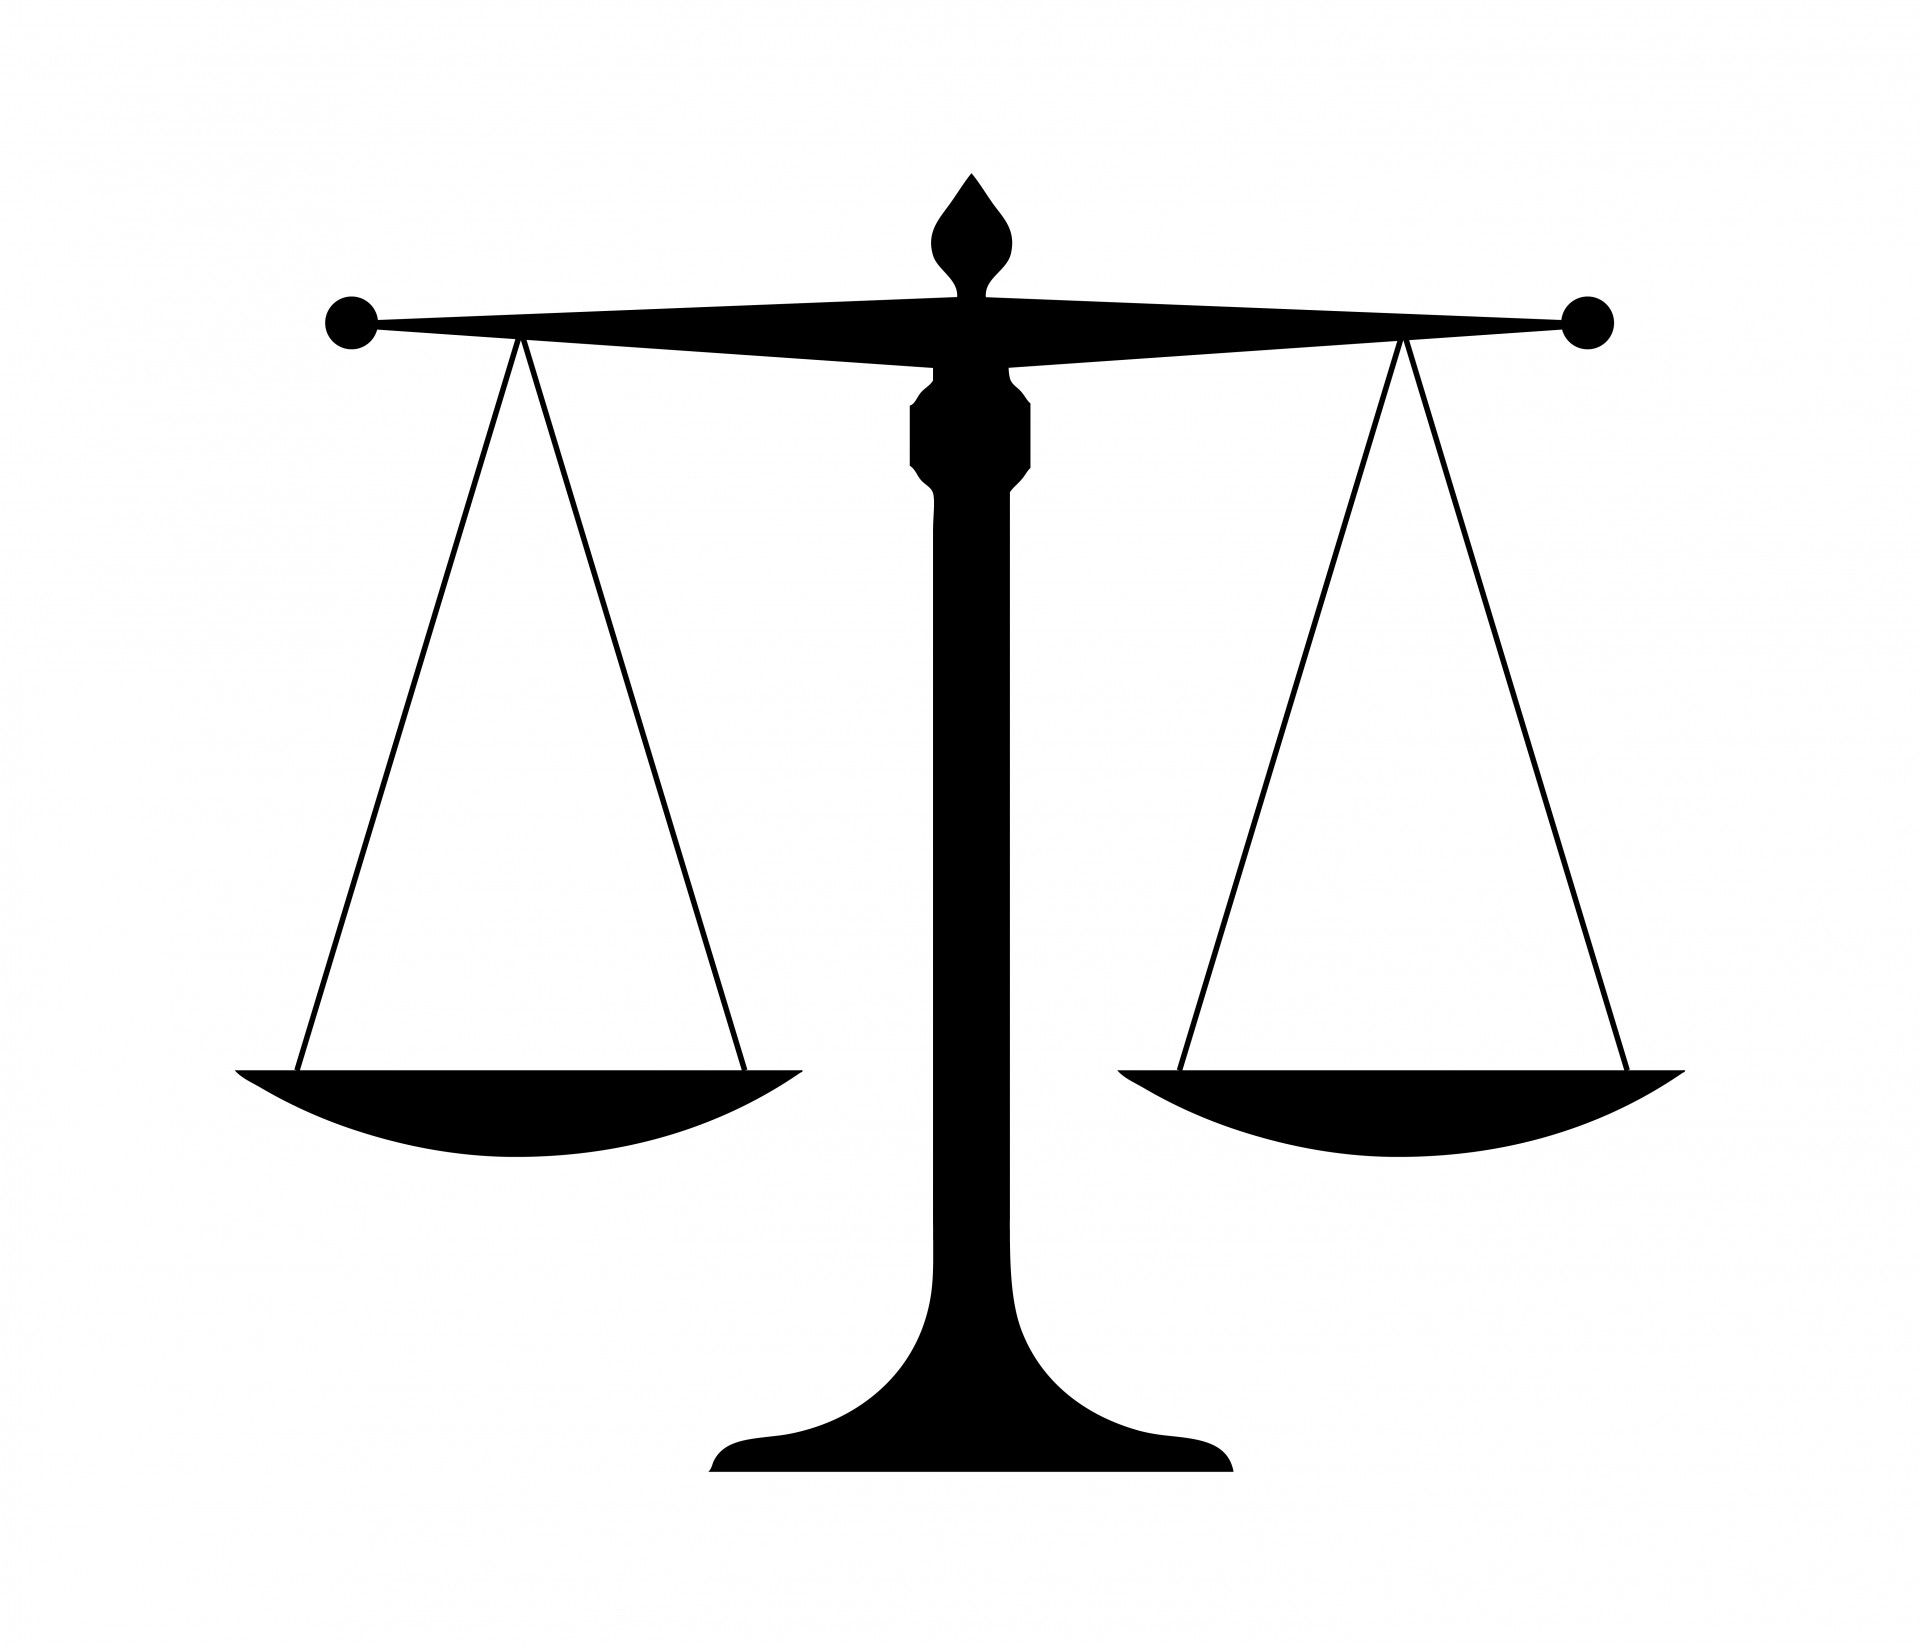 Scales Of Justice Free Stock Photo - Public Domain Pictures